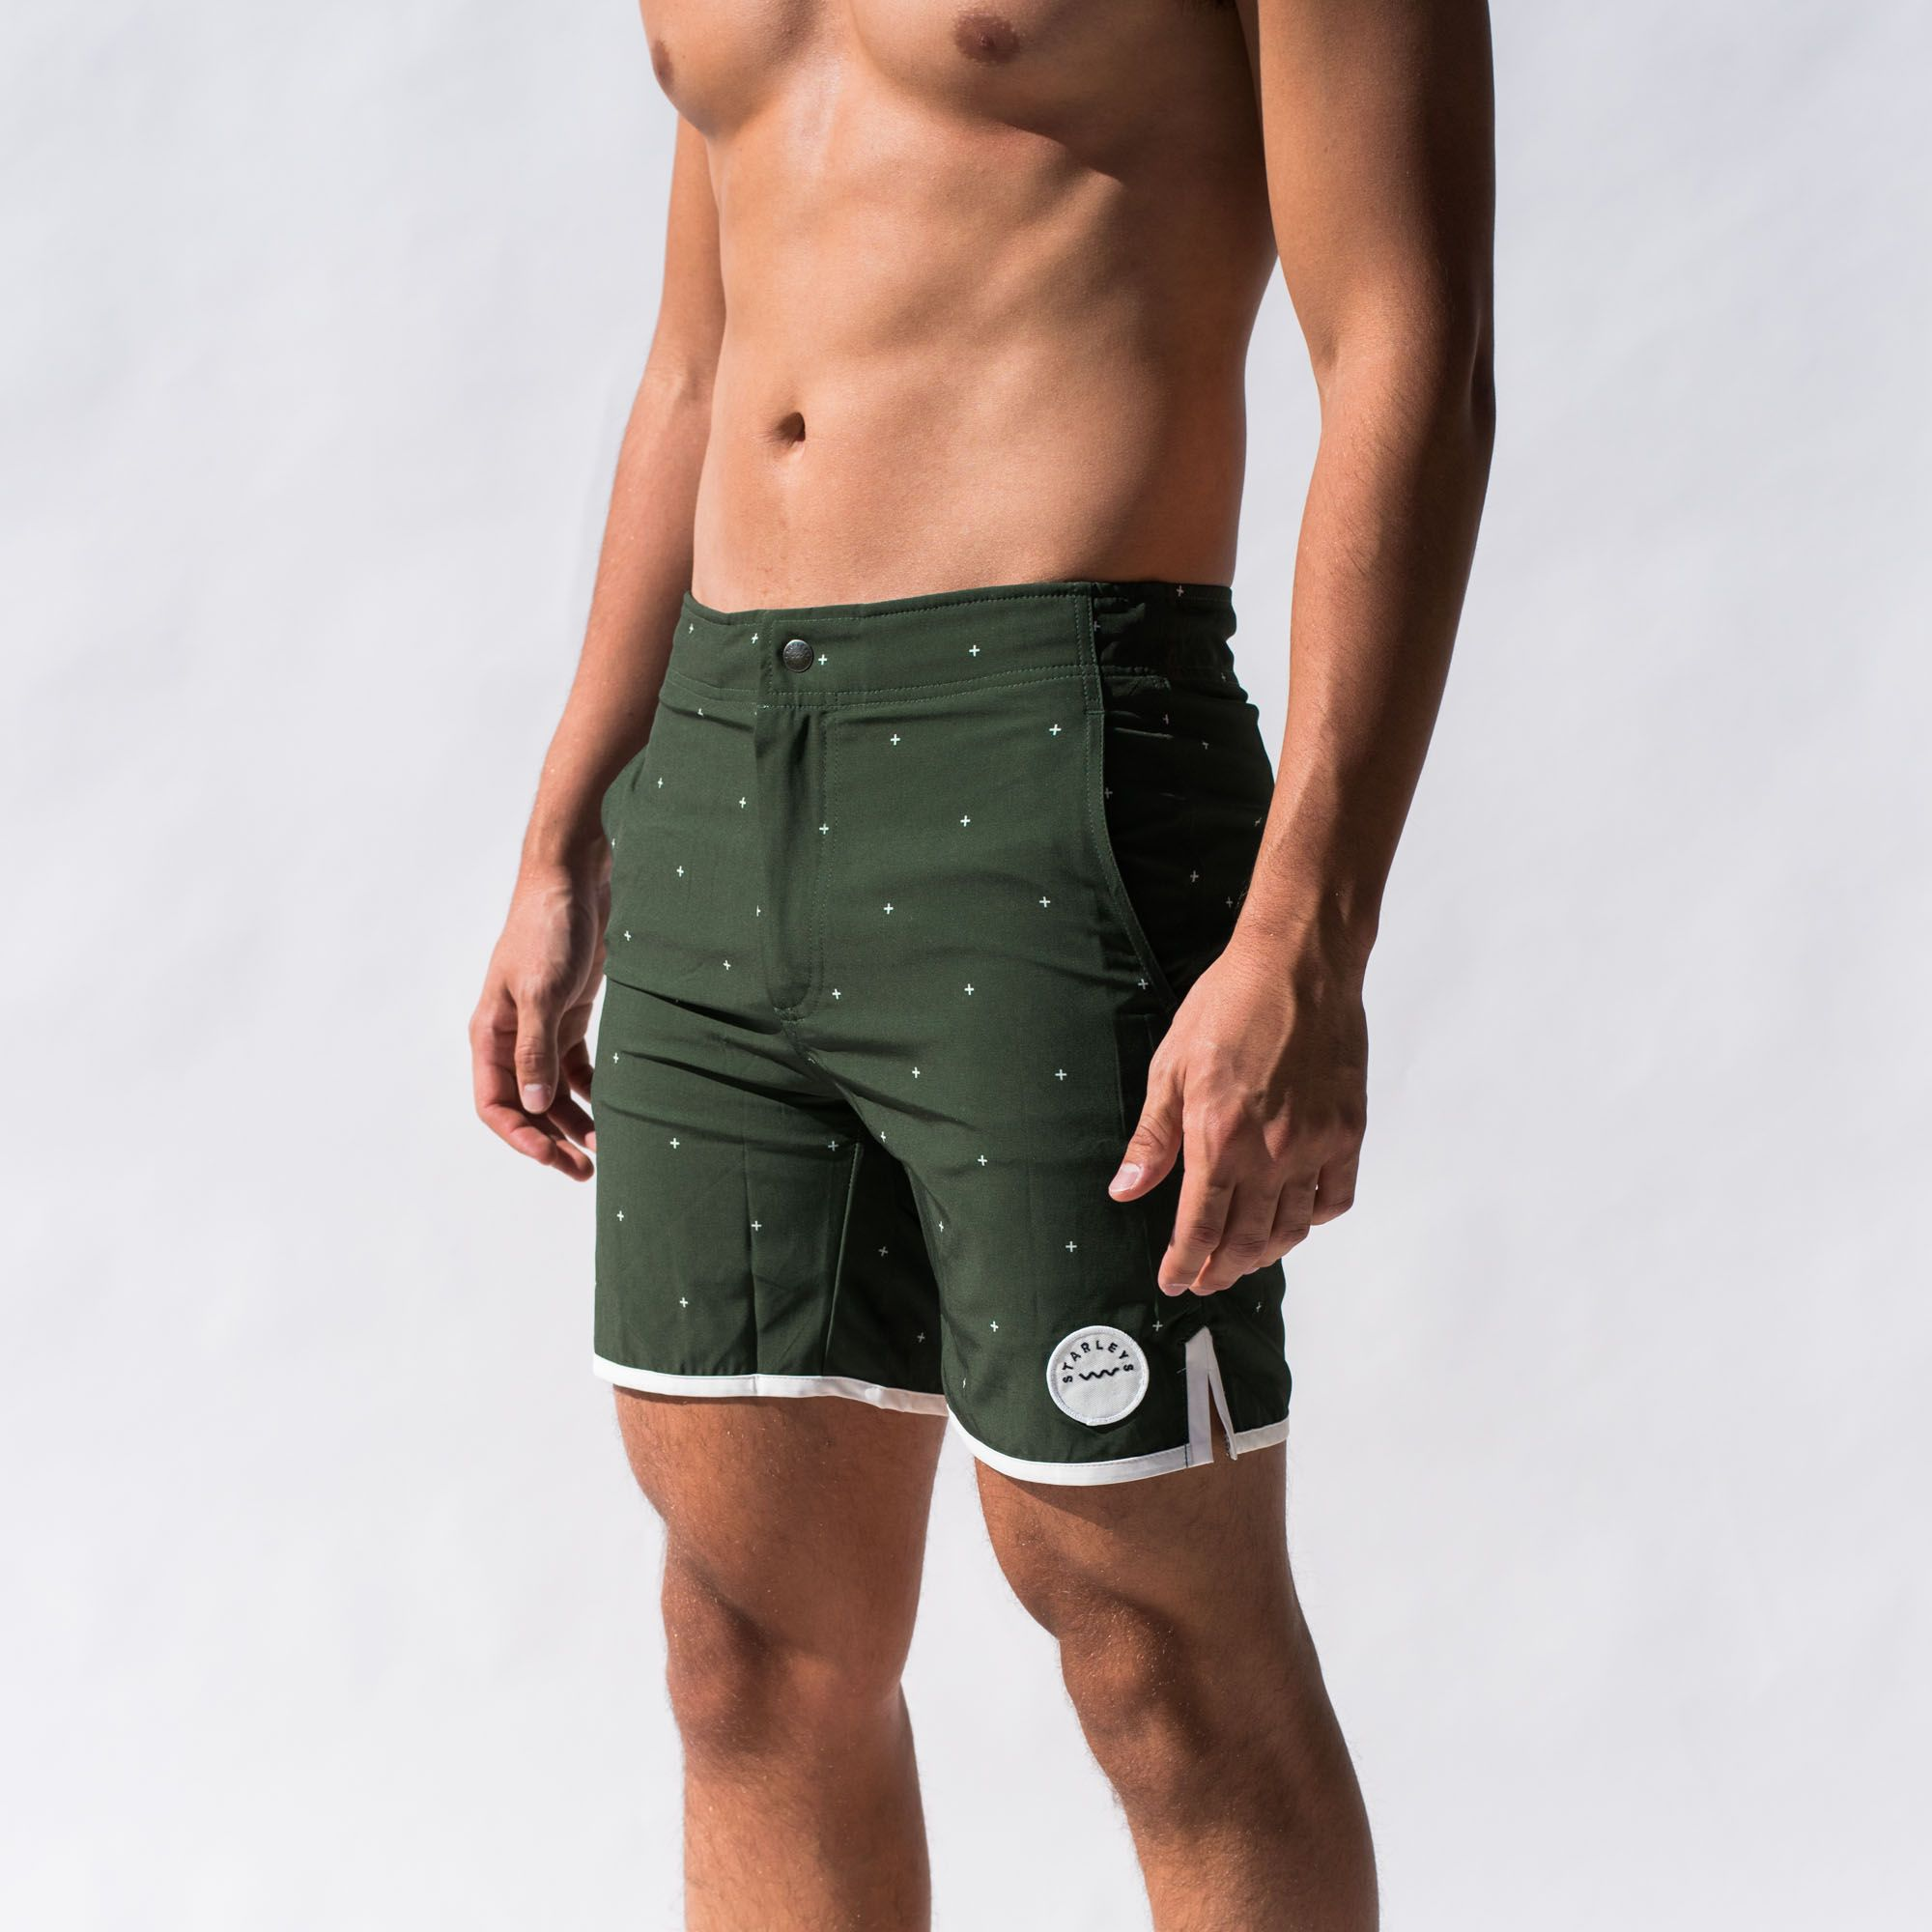 8b1ecc590a0 Mens quality swimwear, mid century modern inspired board shorts with four  way stretch (extra comfortable) fabric, modern trim fit and a shorter  length.